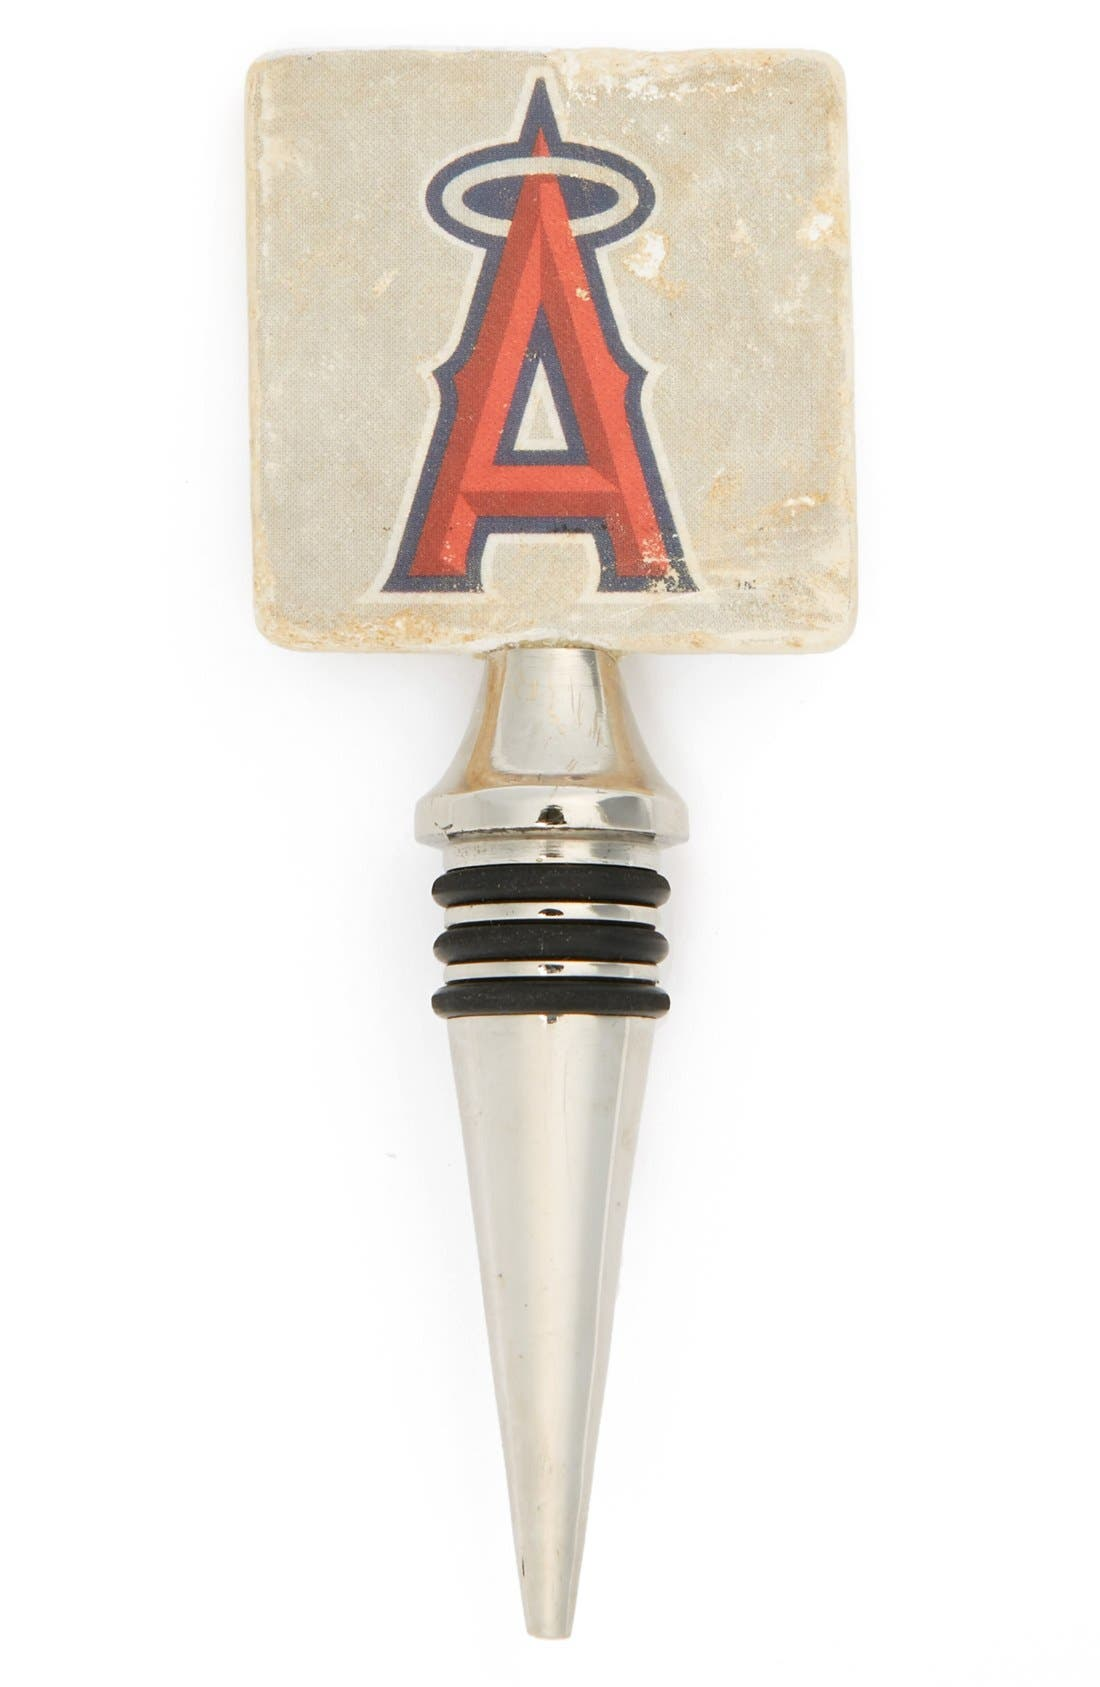 Alternate Image 1 Selected - Studio Vertu 'Anaheim Angels' Wine Stopper